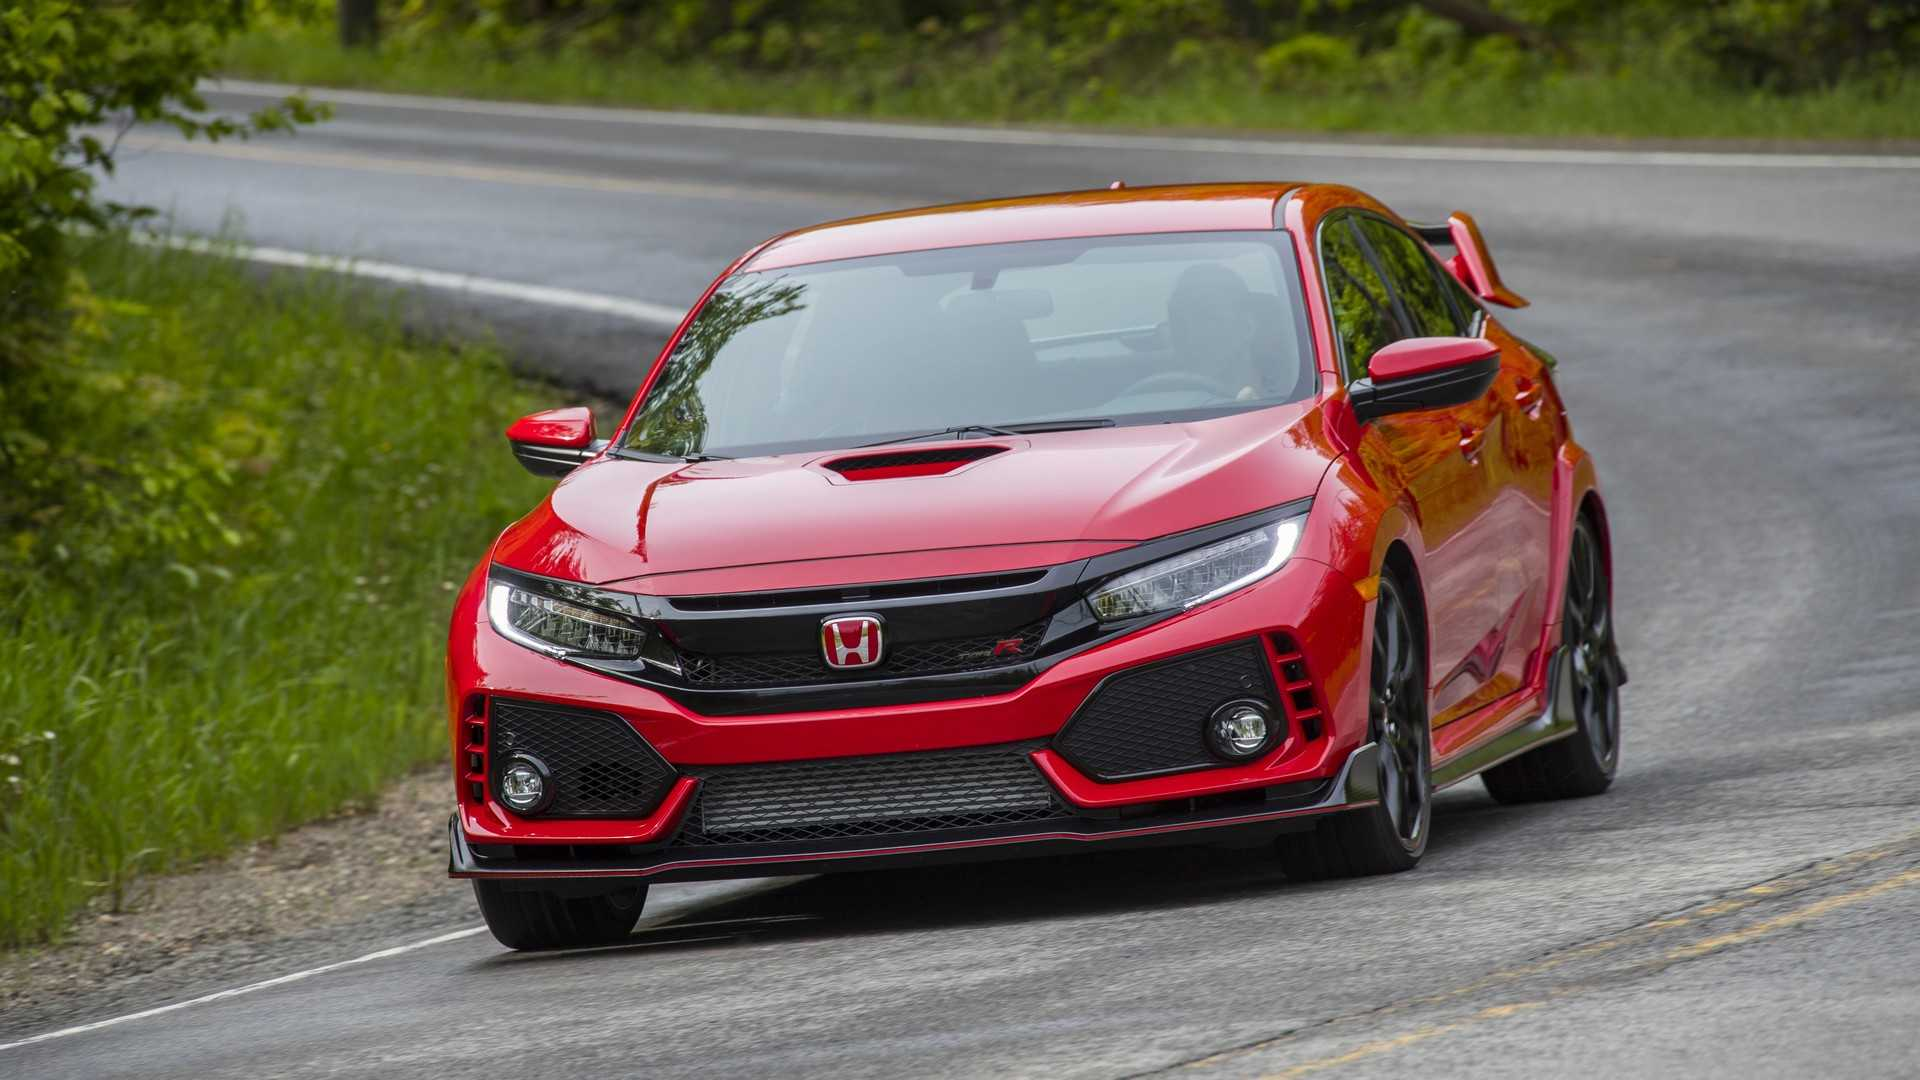 80 The New 2019 Honda Civic Hatchback Specs And Review Review for New 2019 Honda Civic Hatchback Specs And Review